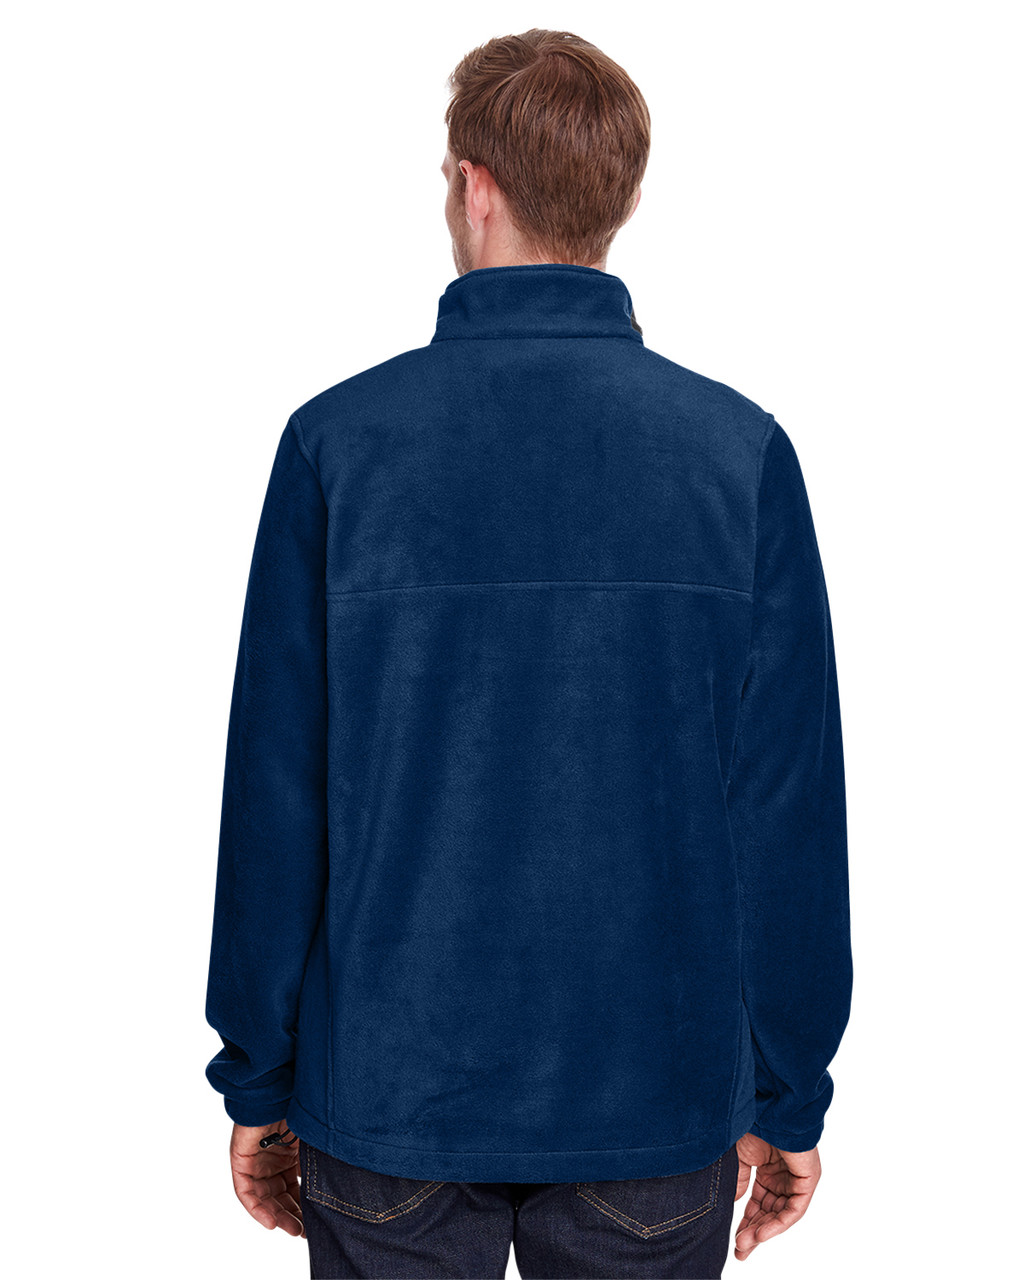 Collegiate Navy - Back, 1620191 Columbia Men's ST-Shirts Mountain™ Half-Zip Fleece Jacket | Blankclothing.ca